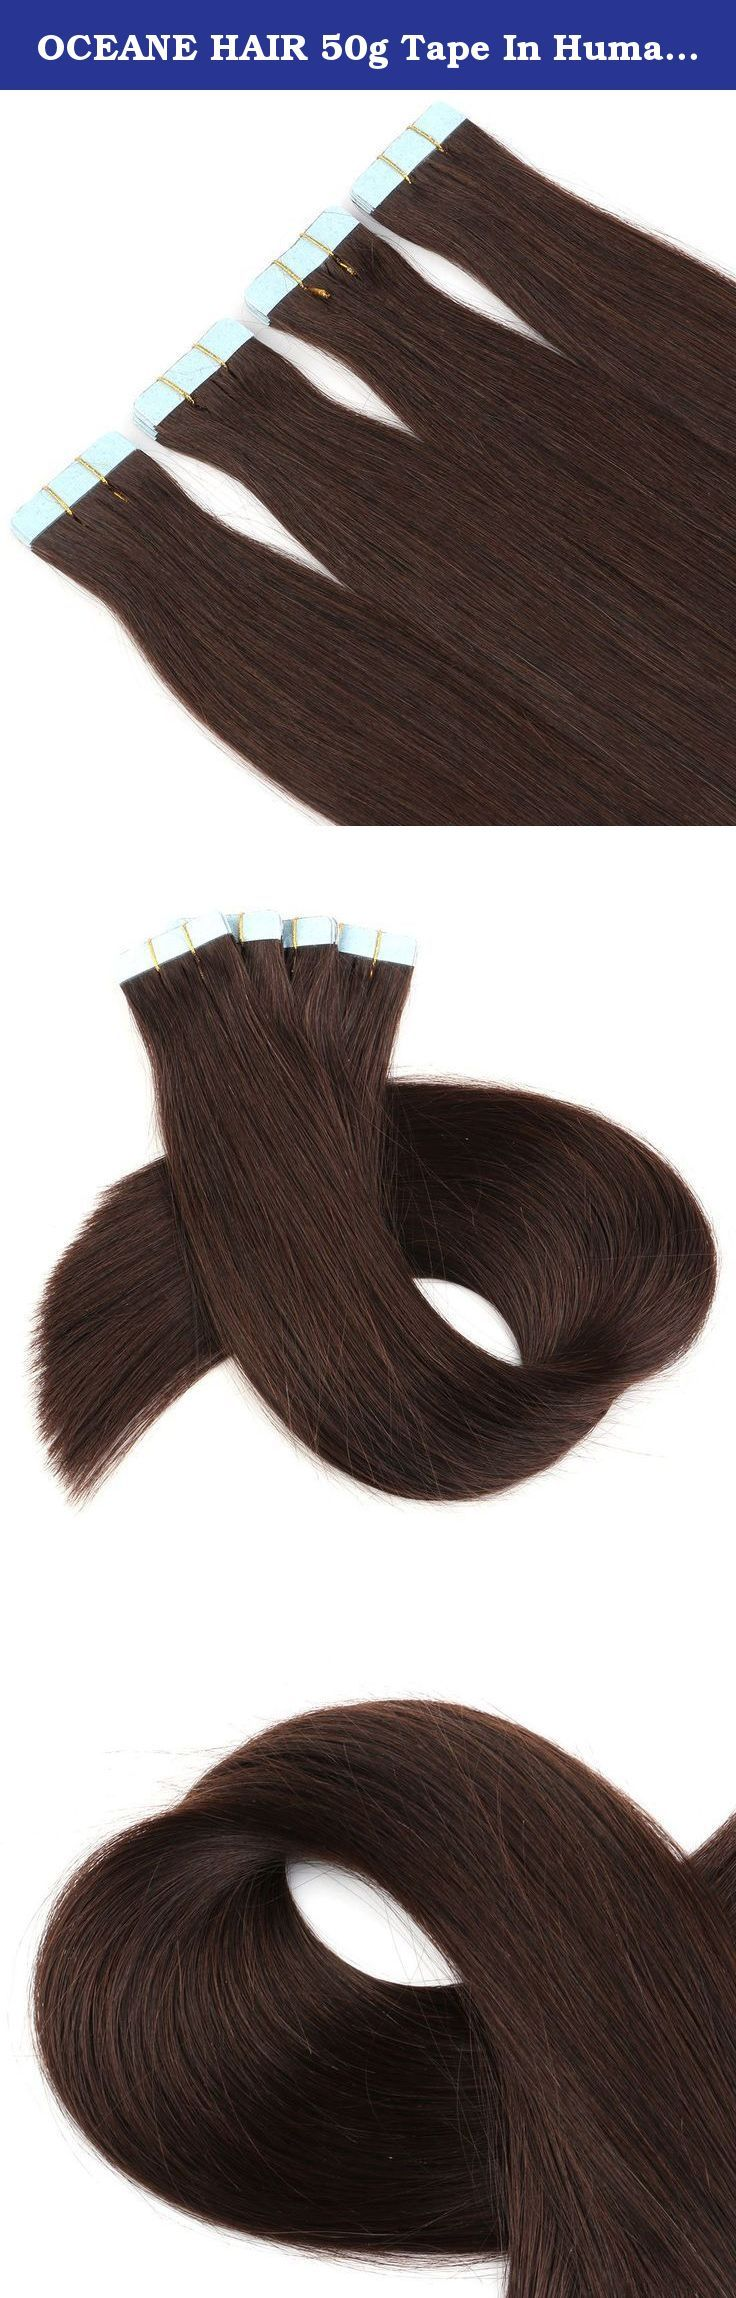 "OCEANE HAIR 50g Tape In Human Hair Extensions Brazilian Human Hair Tape Extensions Skin Weft Hair Extensions Human Tape Hair Extensions (16"", 2#). OCEANE HAIR BEAUTY BEGINS WITH QUALITY Hair Material: 100% Remy Human Hair Hair Type: Tape In Human Hair Extensions Hair Color: 1B#/1#/2#/4#/6#/8#/10#/22#/24#/27#/613# Hair Volume: 2.5g per strand , 50g per pack Hair Advantage: No Chemical Smell, No Tangle, No Shedding Shipping Method: FREE Standard Shipping by e Packet takes 10 - 25 Days..."